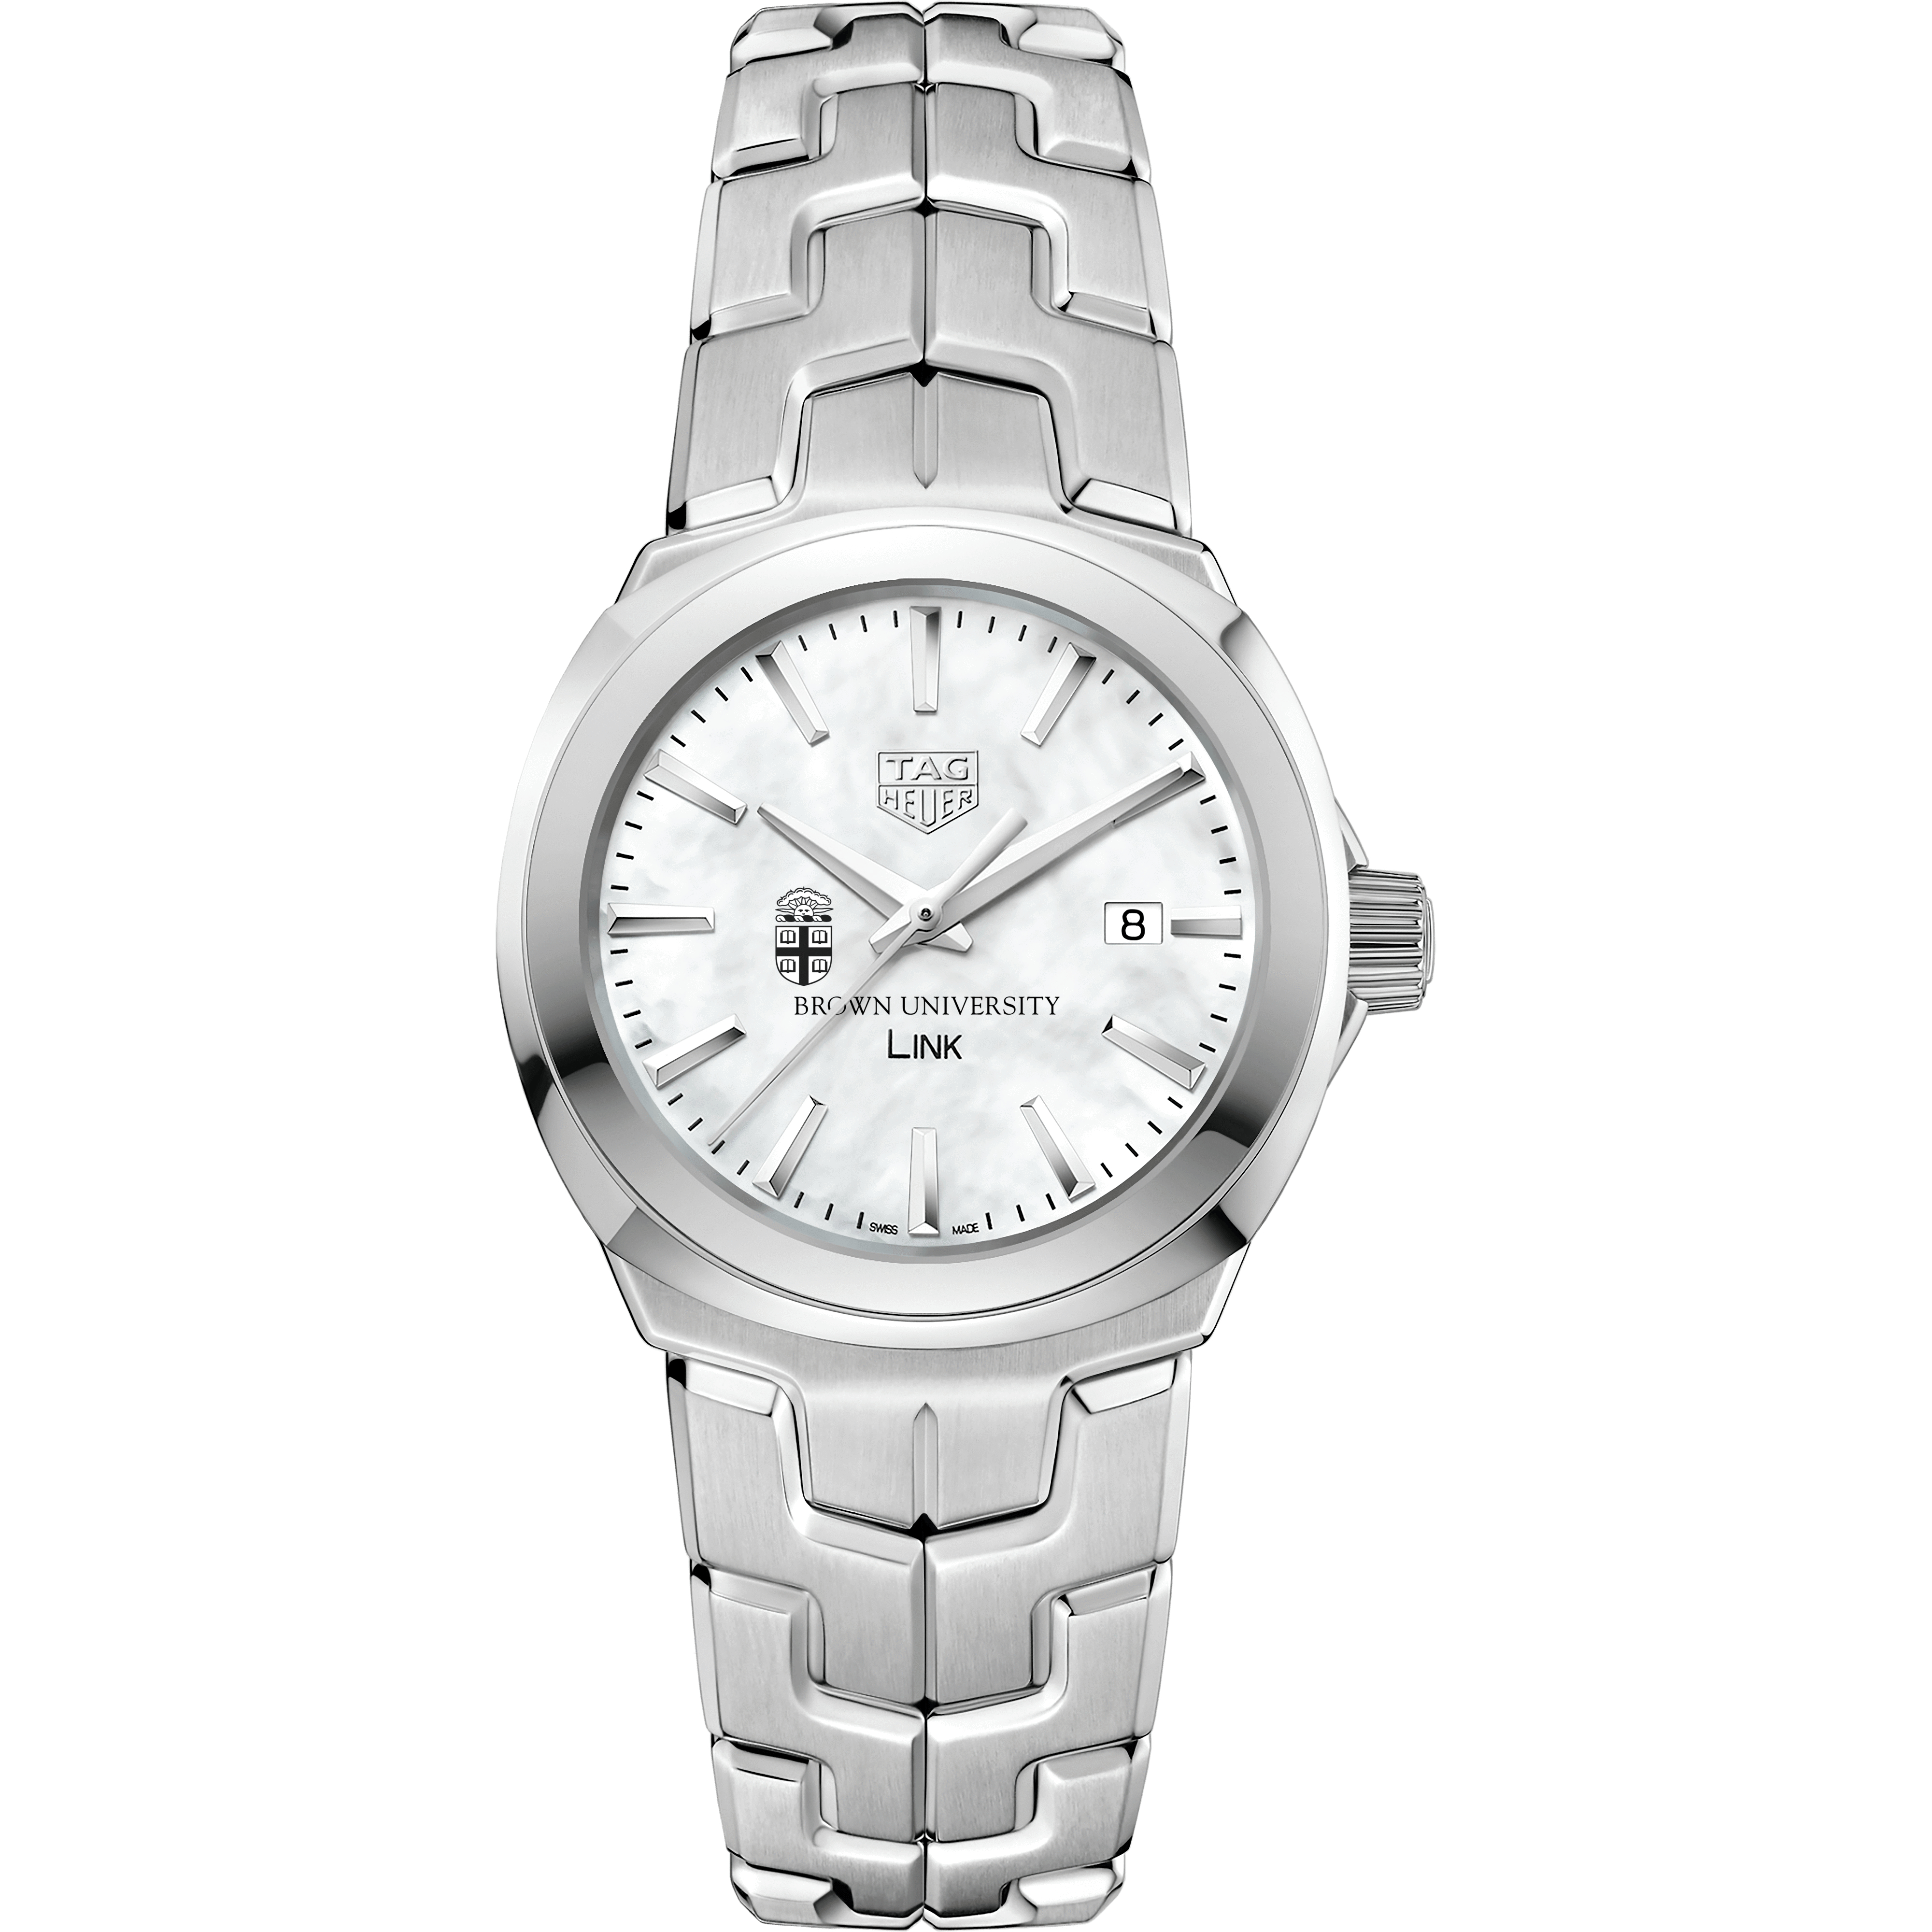 Brown University TAG Heuer LINK for Women - Image 2